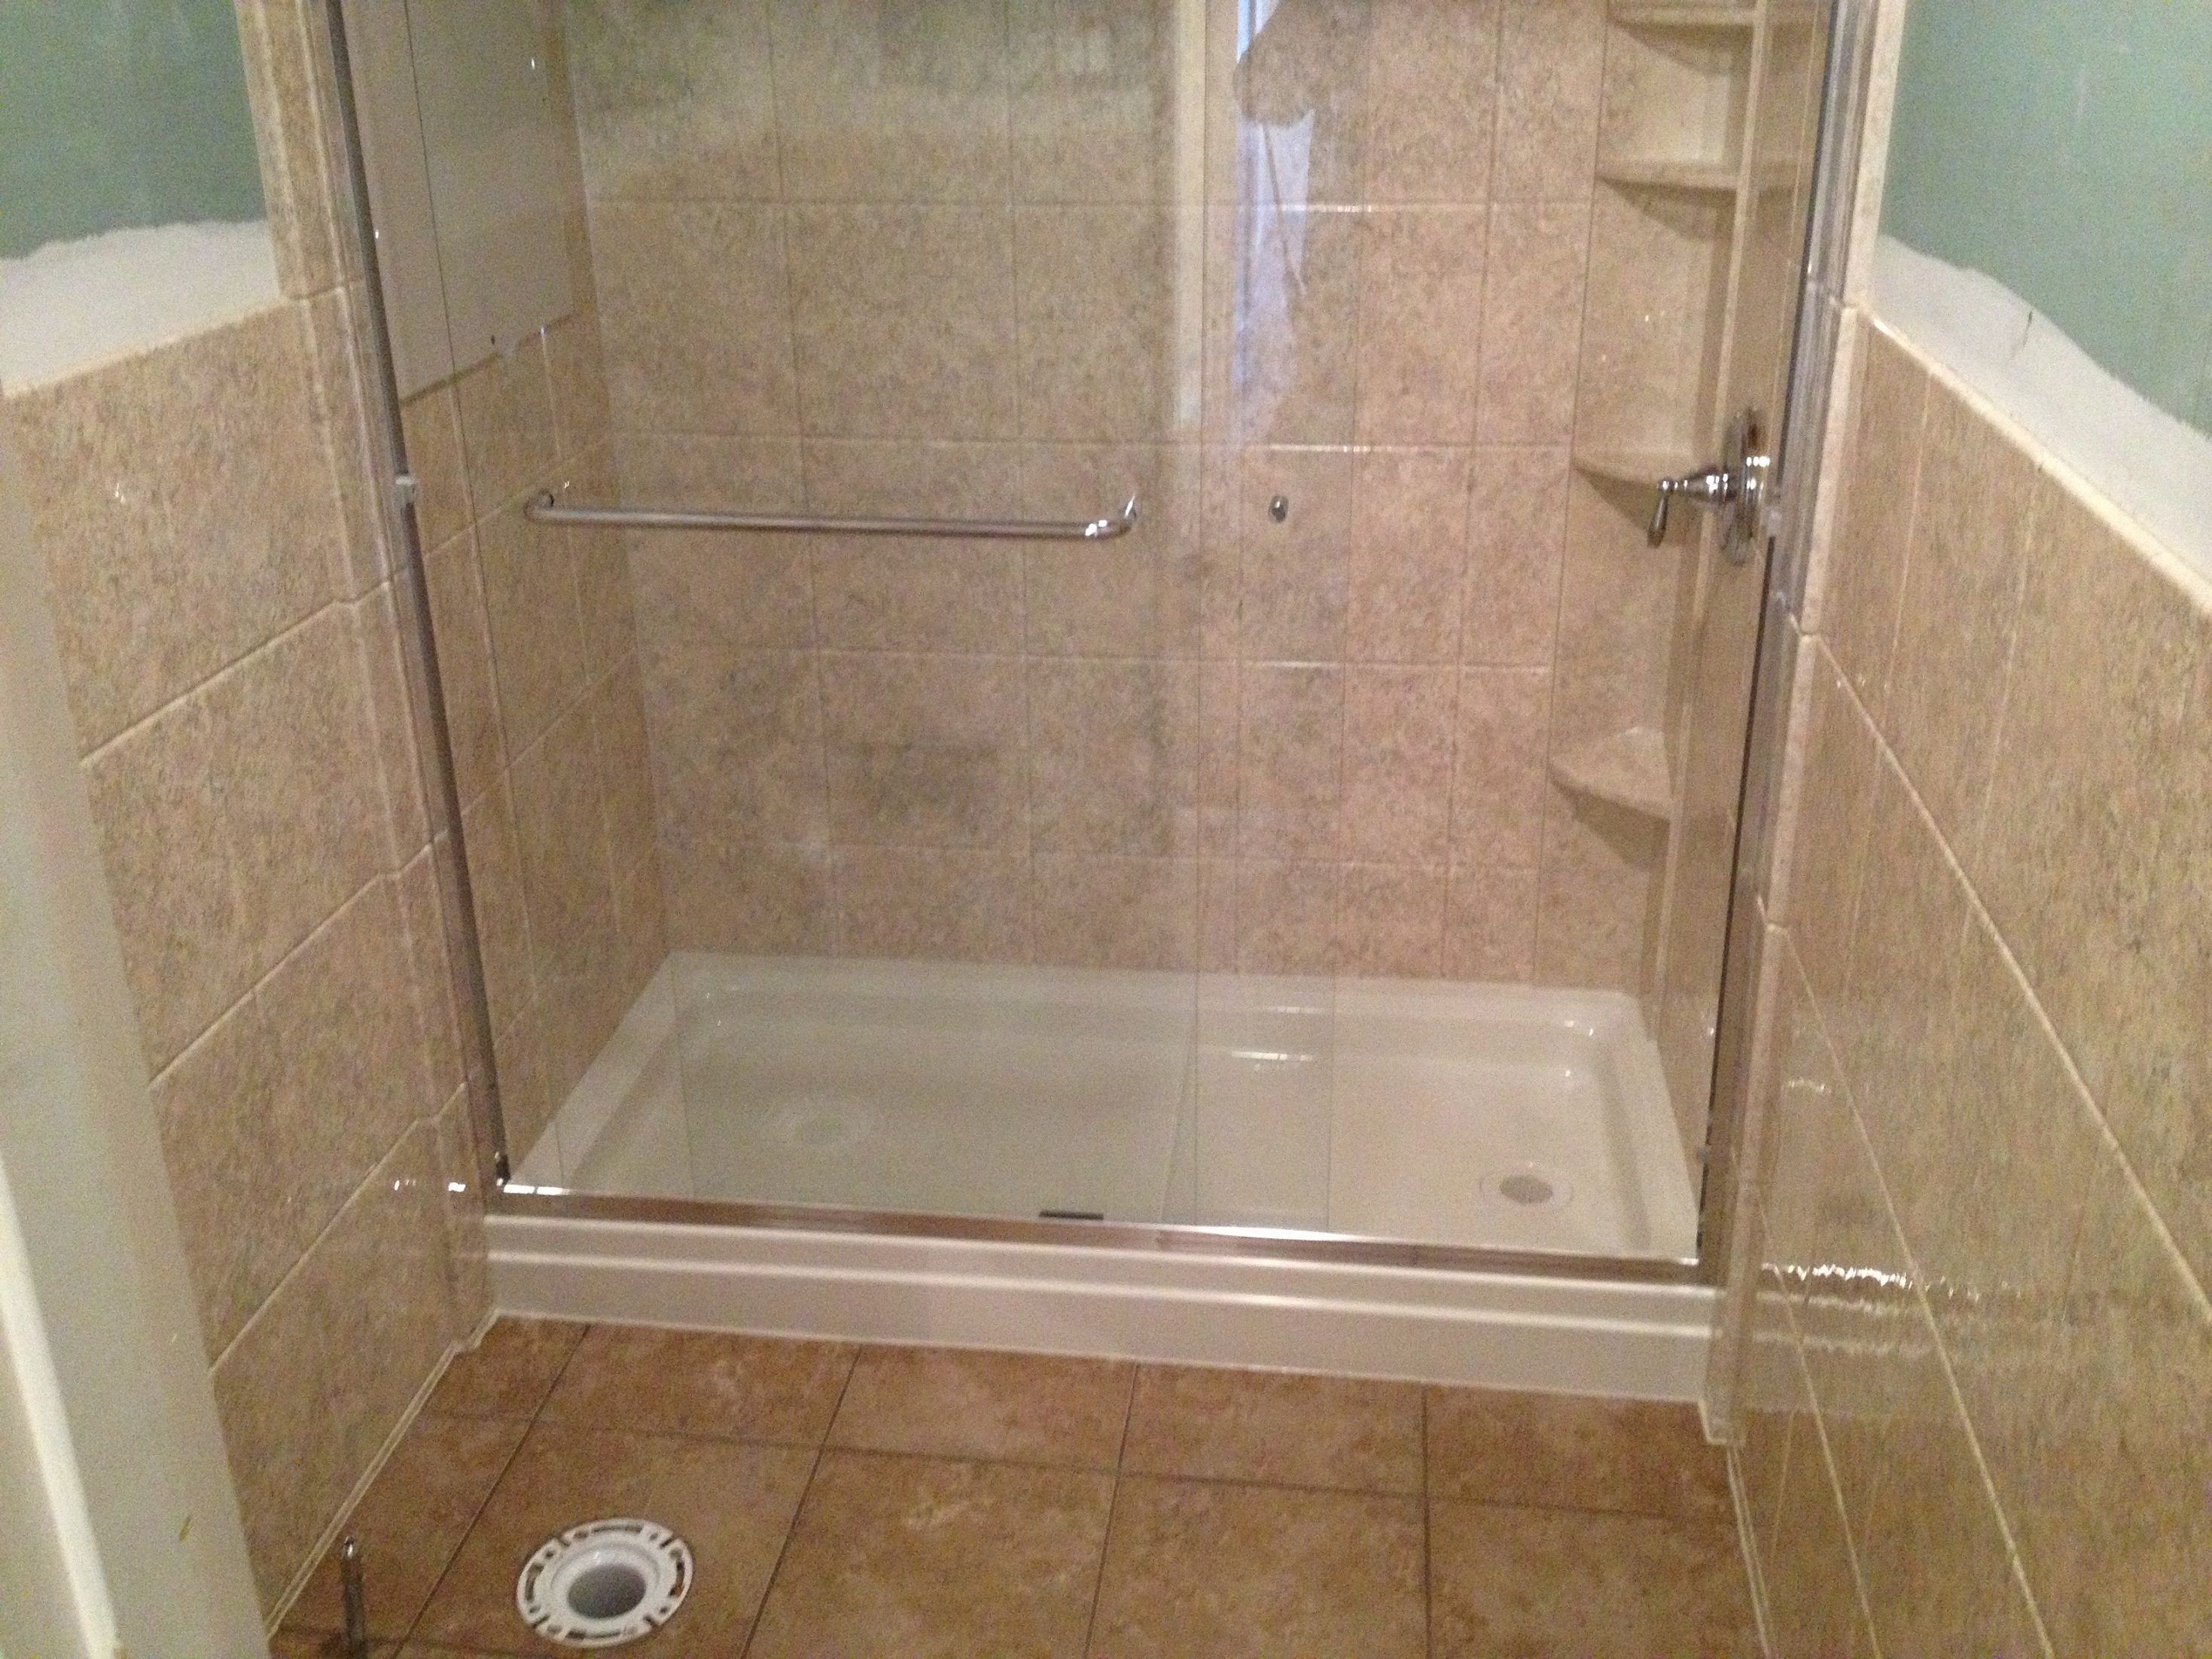 Diy Replace Tub With Walk In Shower Car Tuning